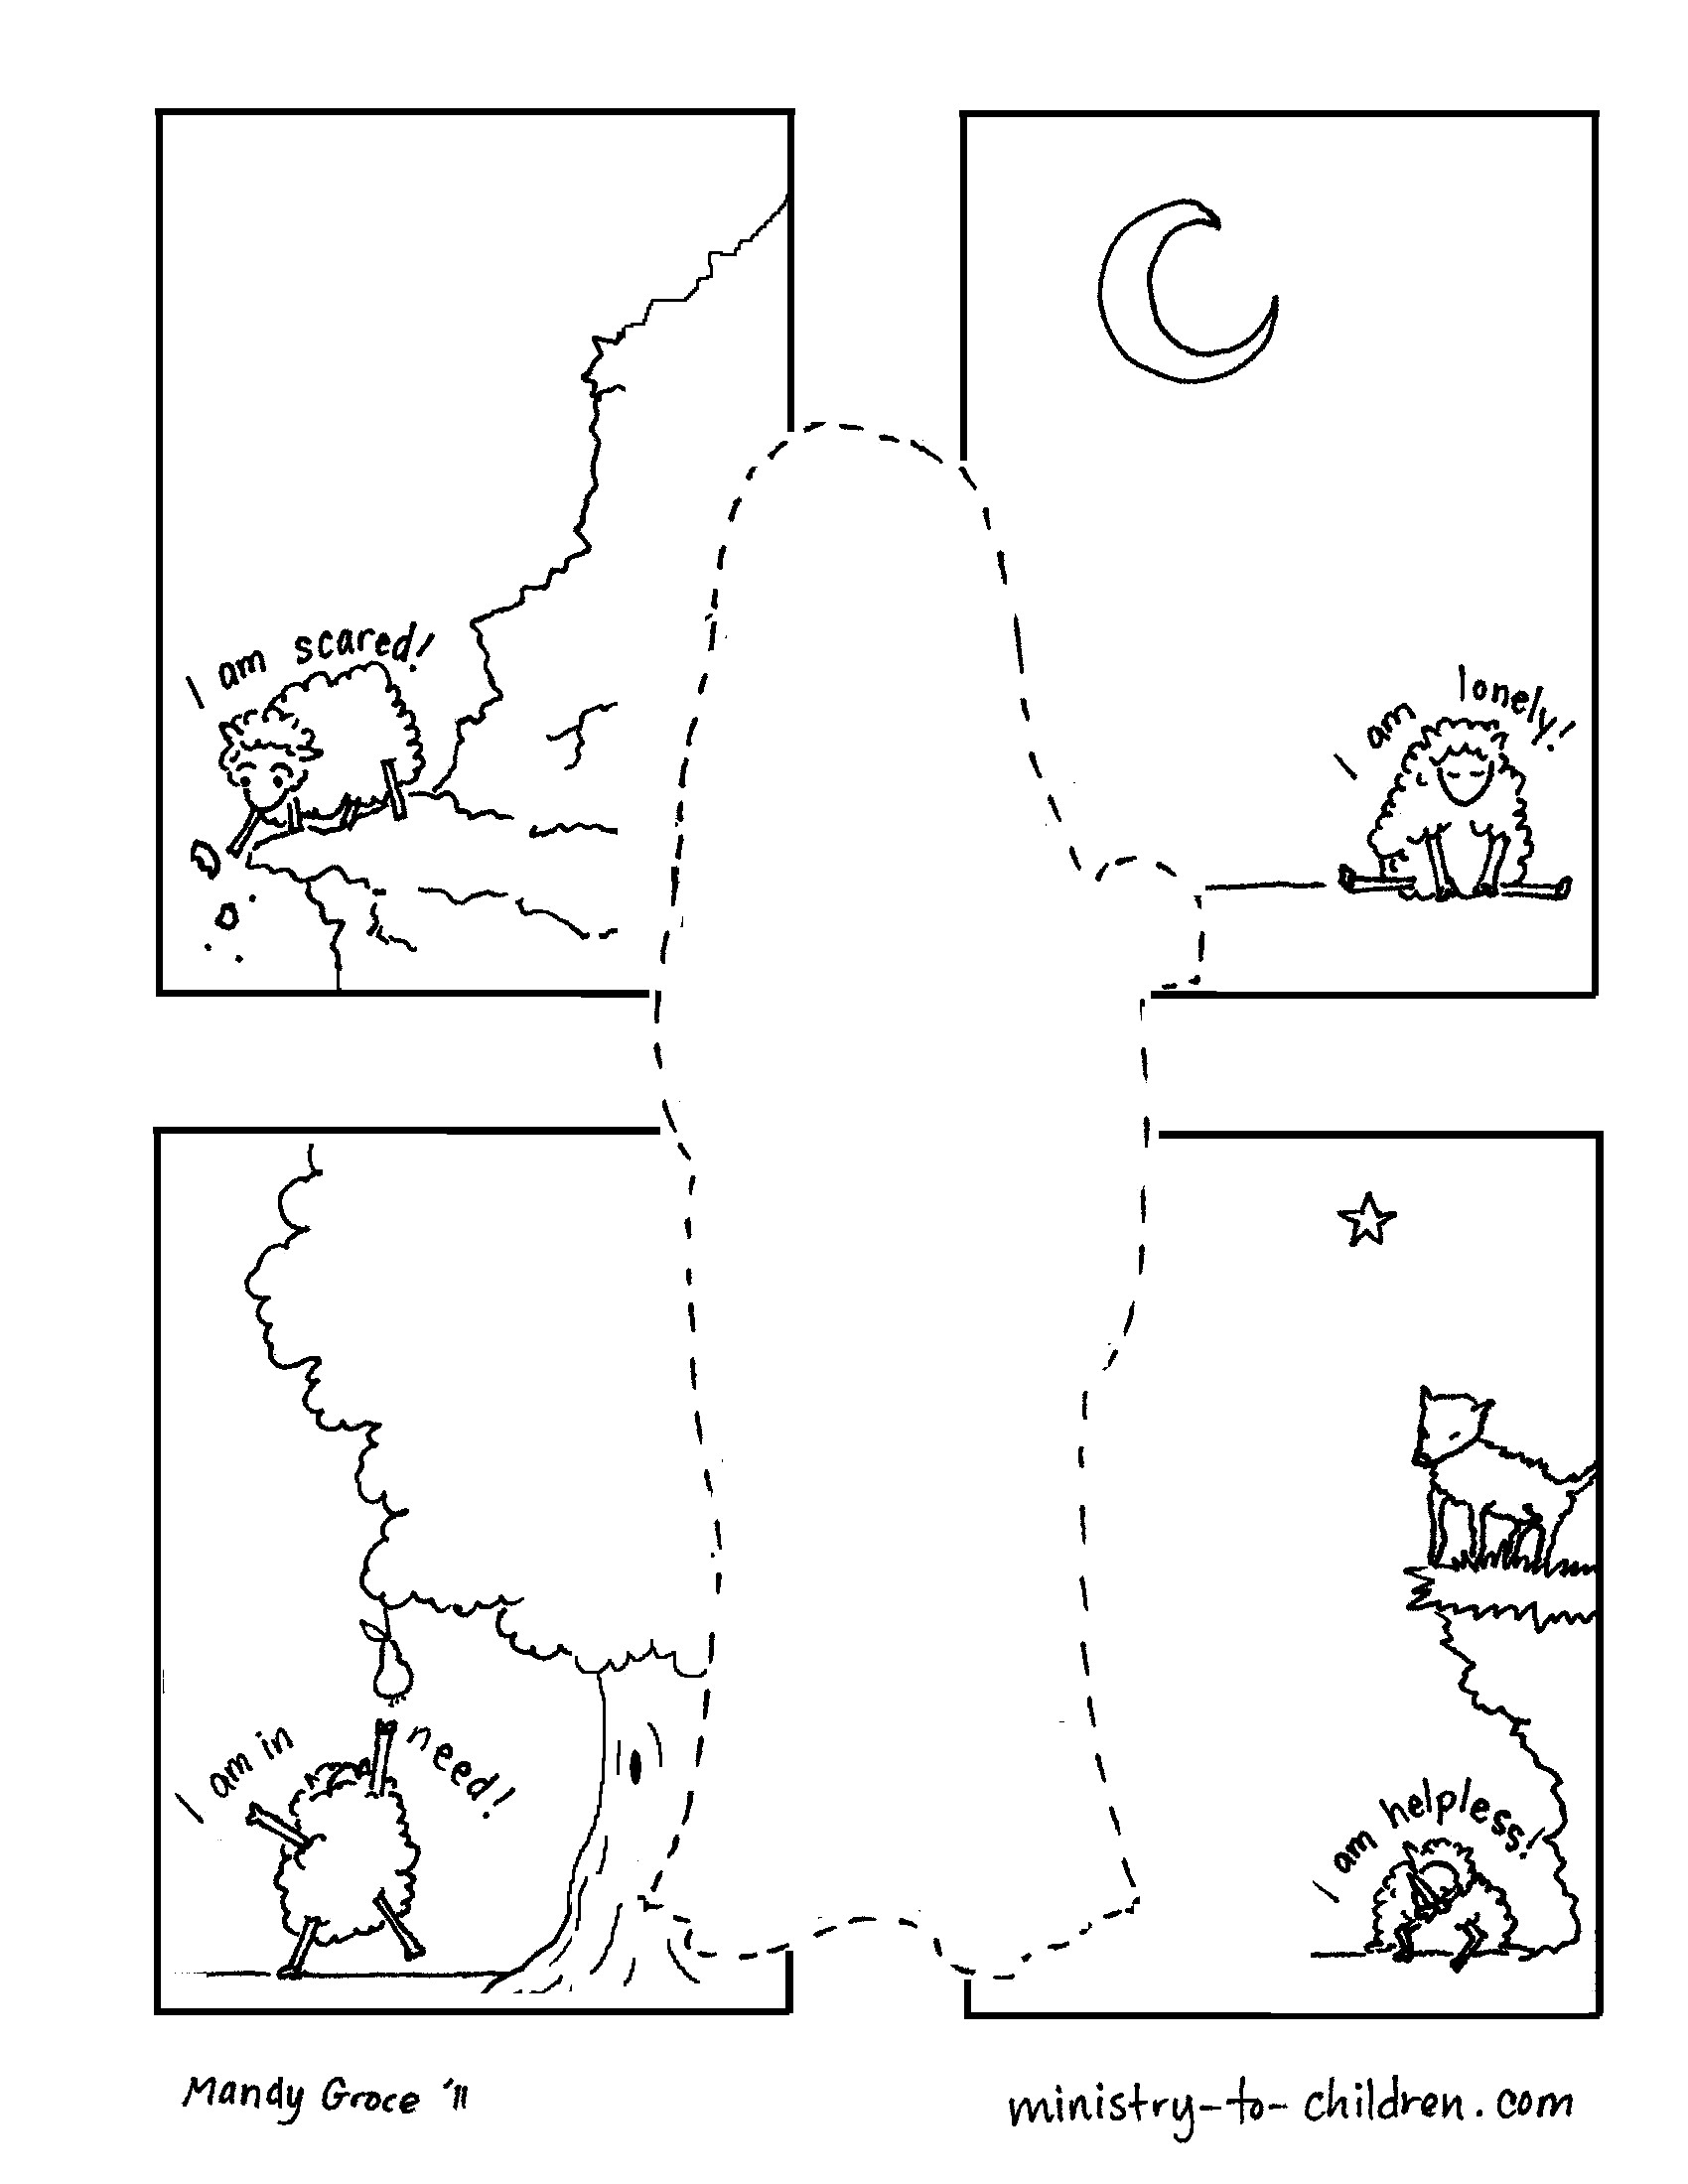 The Good Shepherd Coloring Page Coloring Pages For Kids That Share The Gospel Printable Coloring